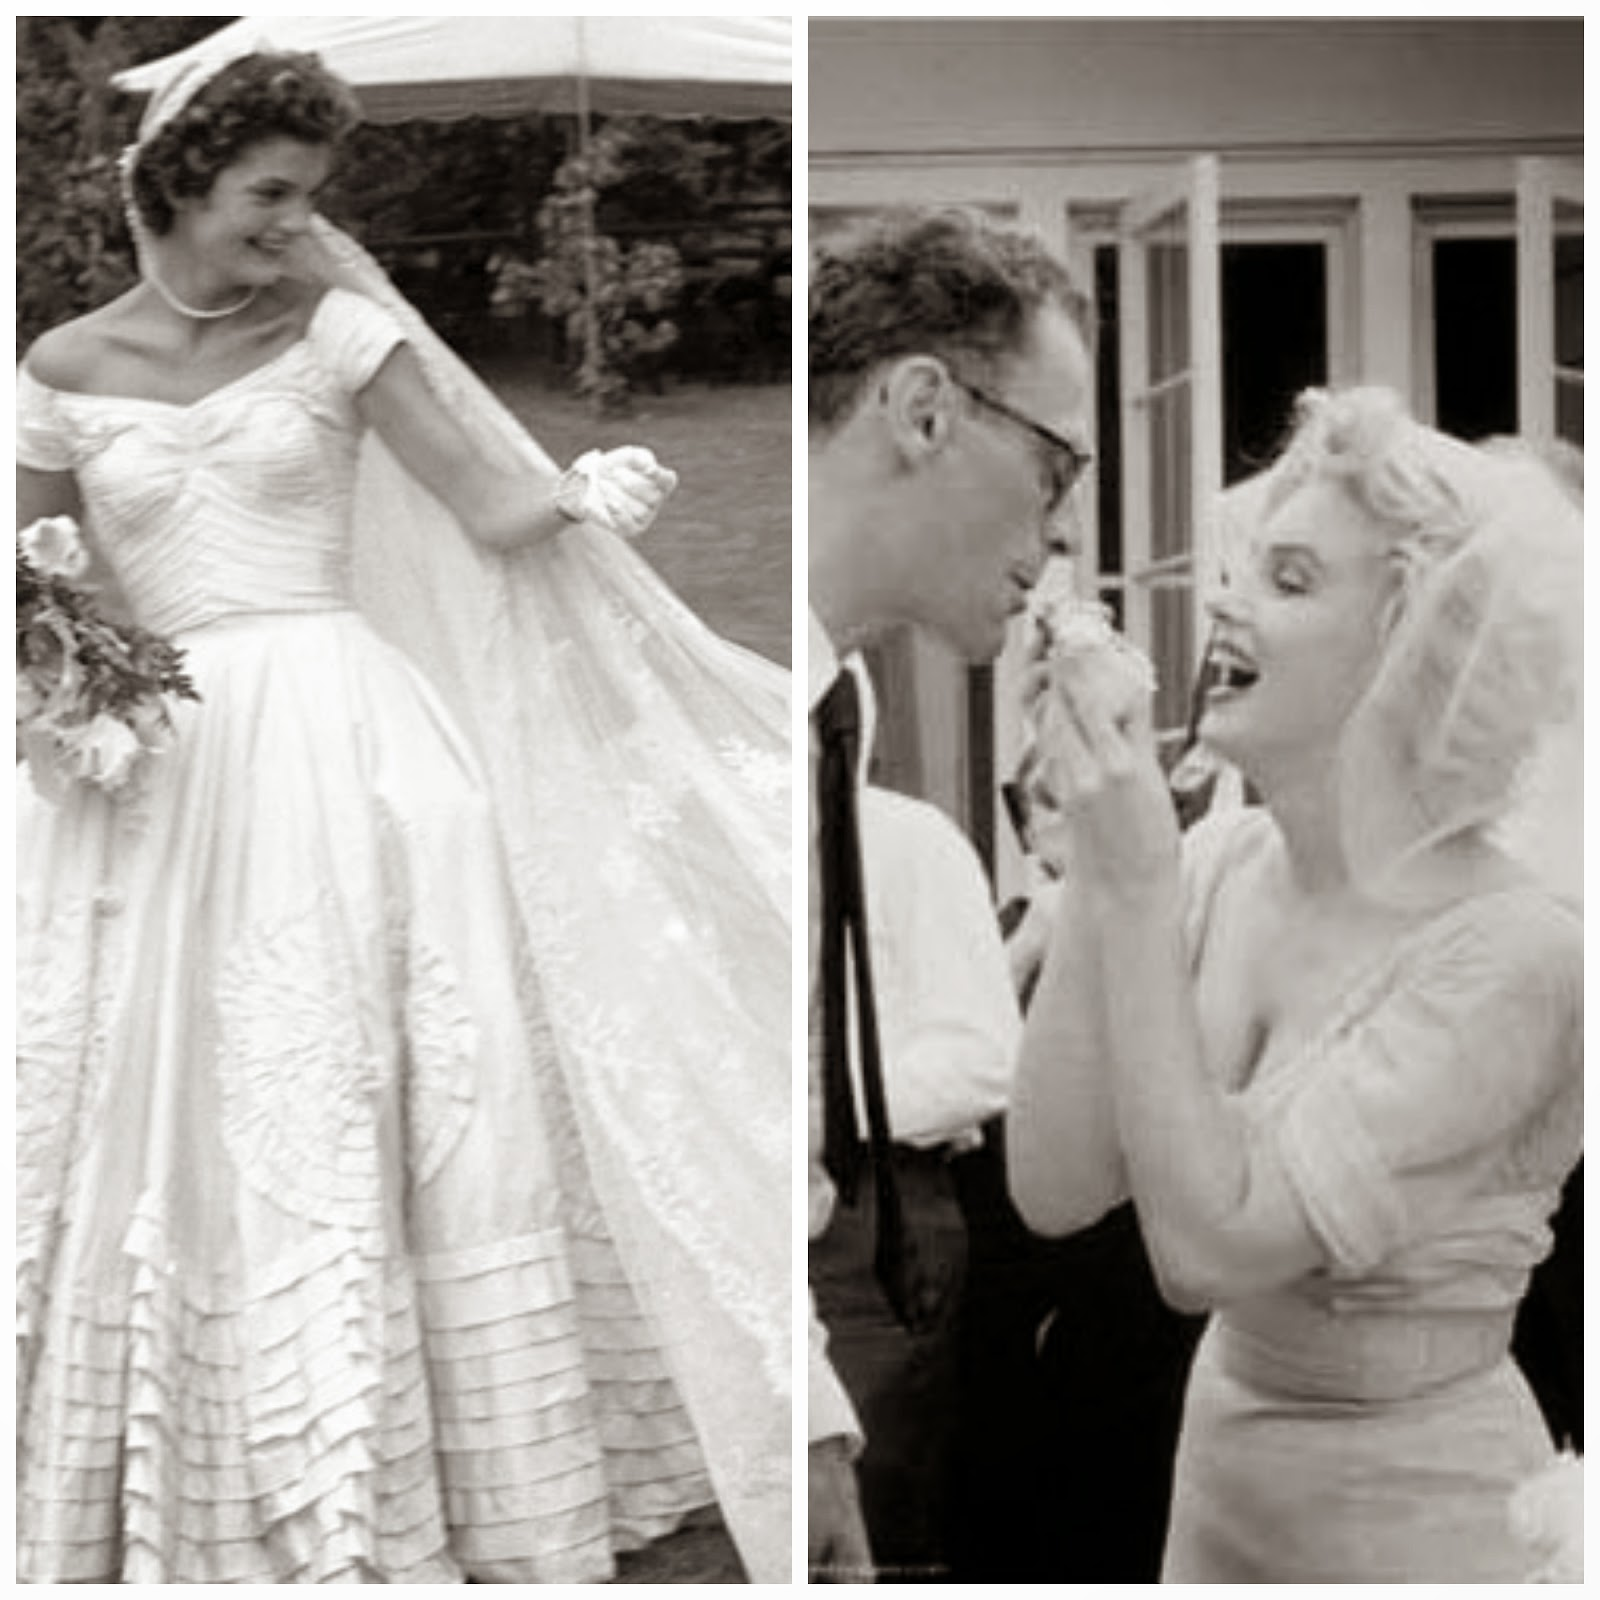 Age old youngster affordable wedding dresses 1950s jackie kennedy and marilyn monroe wedding dresses affordable 1950s wedding dresses junglespirit Image collections